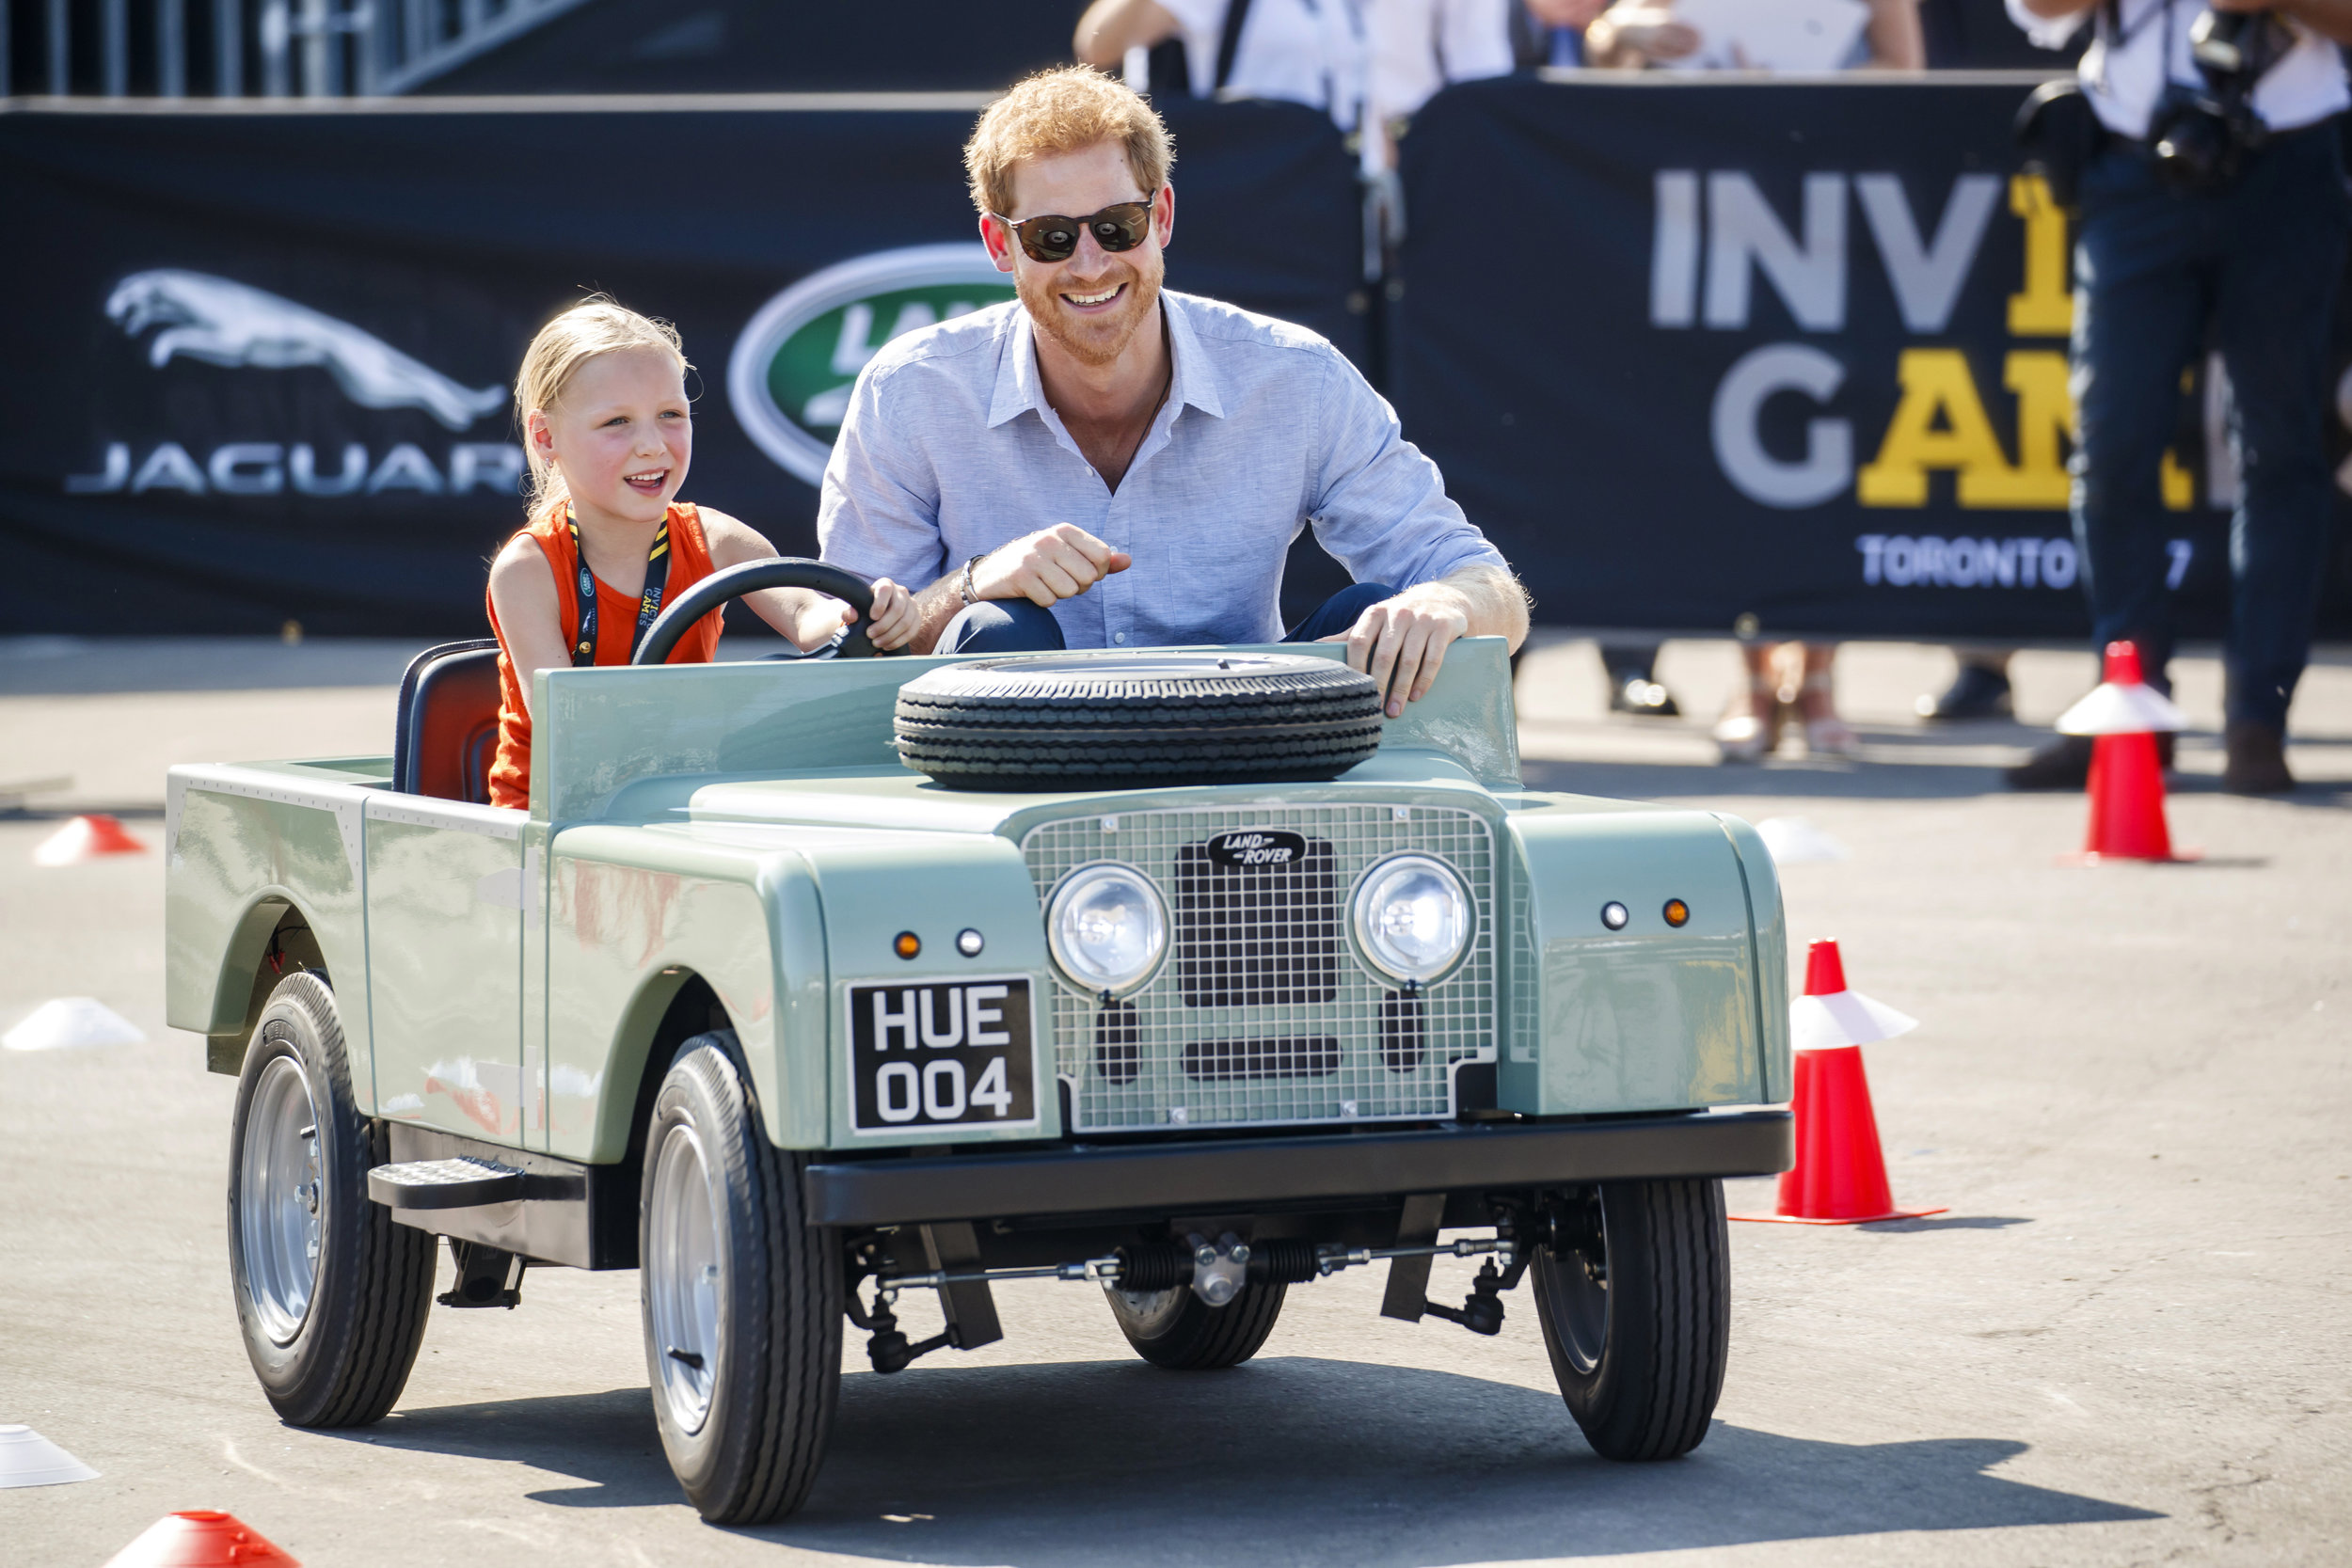 oaJjXK8qI-ERSpa0j6ncaEhfhe2pdlbB_Prince_Harry_drives_with_five_year_old_Daimy_Gommers__daughter_of_Dutch_Invictus_Games__Toronto_2017_competitor_Paul_Gommers_at_the_Jaguar_Land_Rover_Driving_Challenge_in_Toronto__Canada_.jpg